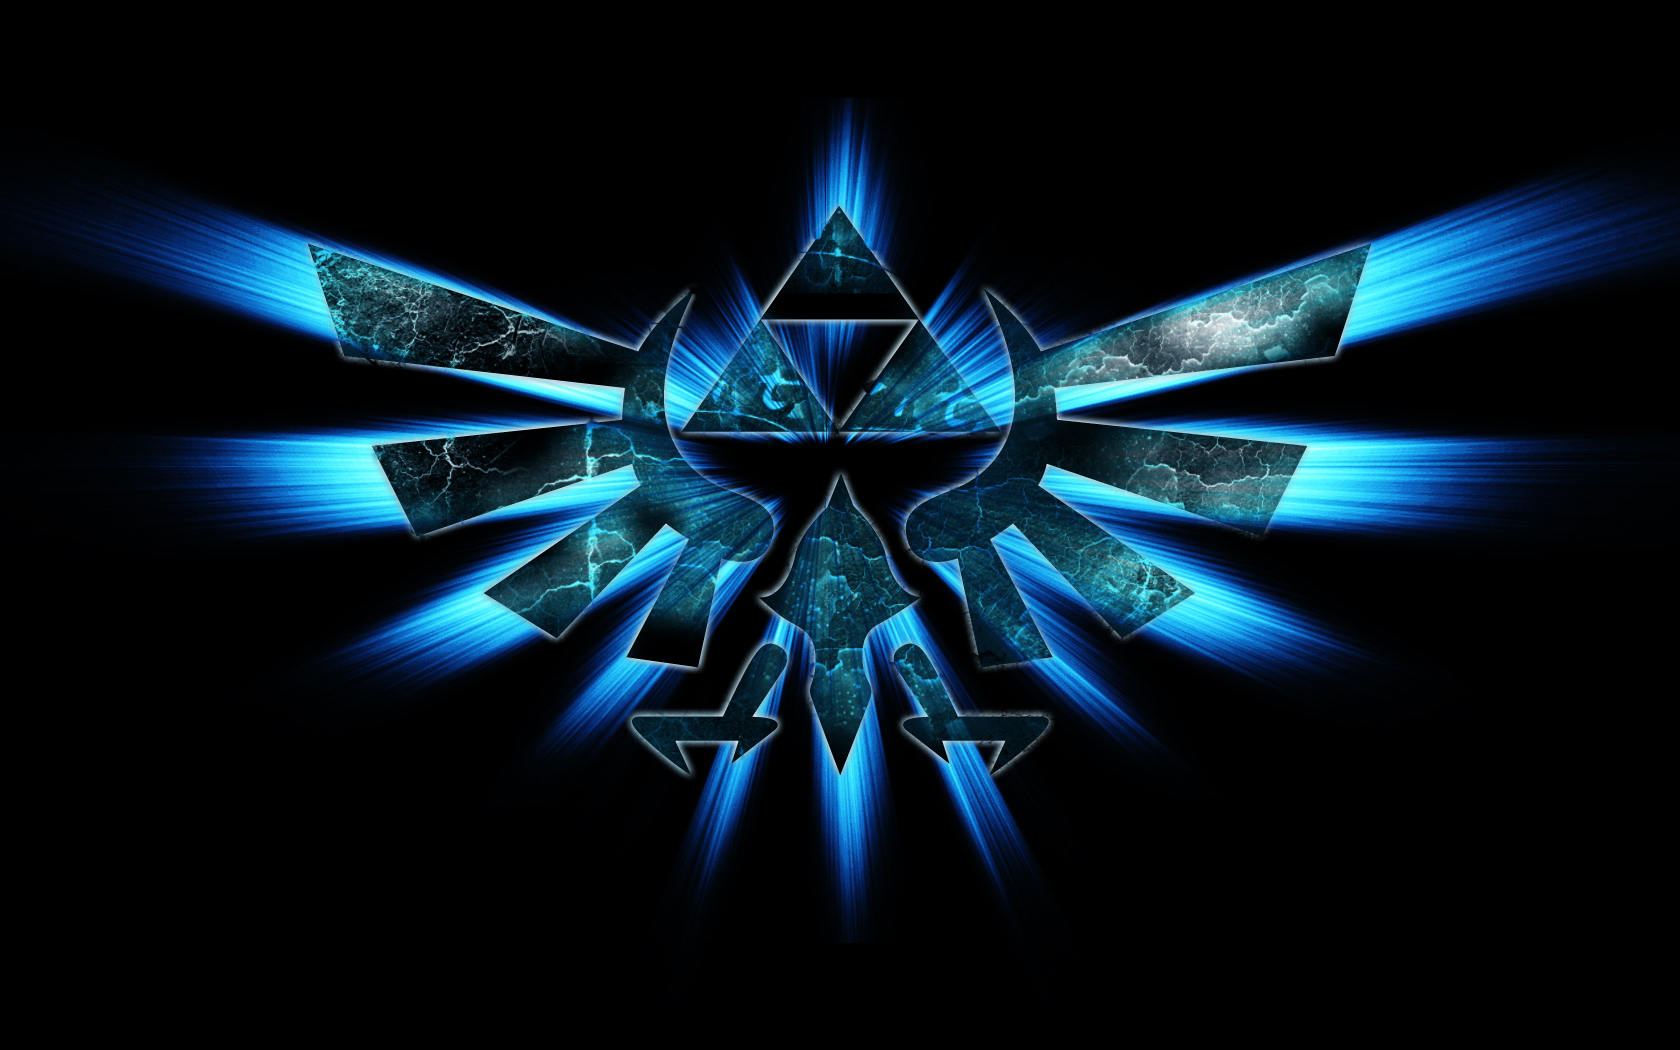 Triforce Wallpaper - The Legend of Zelda 1680x1050 1440x900 1280x800